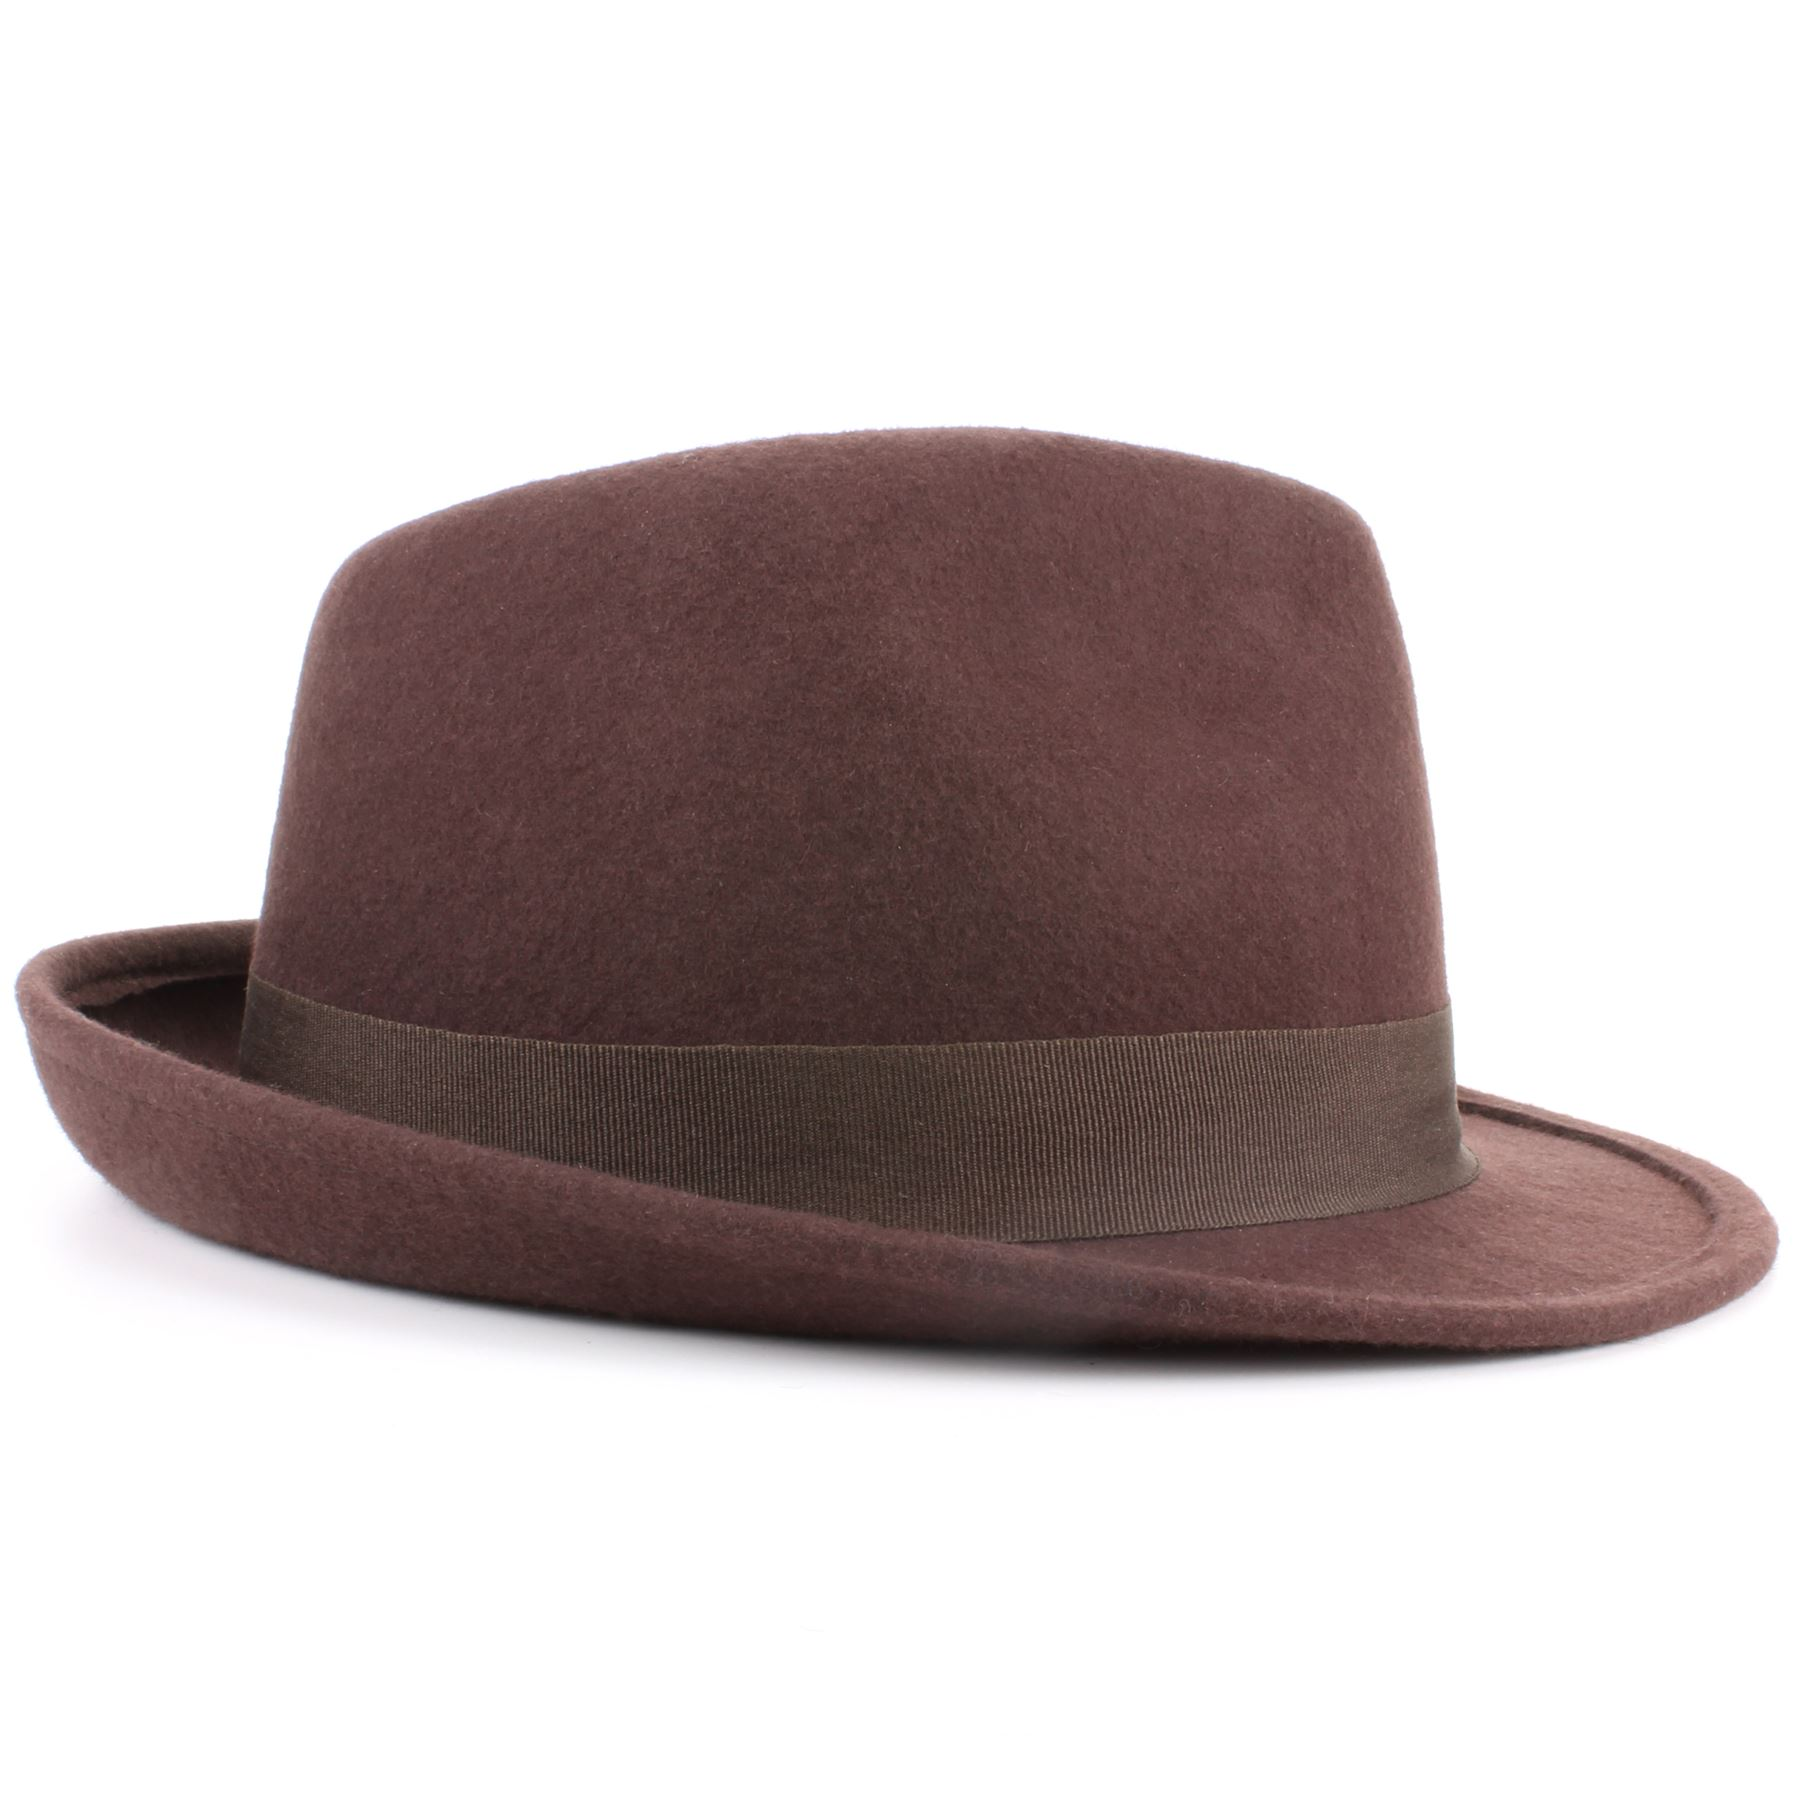 Fedora Men's Hats: Shop our collection to find the right style for you from bigframenetwork.ga Your Online Hats Store! SALE. Quick View. Sale $ Was $ $ OFF. Straw Fedora Hat Trilby Cuban Cap Summer Beach Sun Panama Short Brim Men Women. 1 Review. SALE. Quick View. Sale .